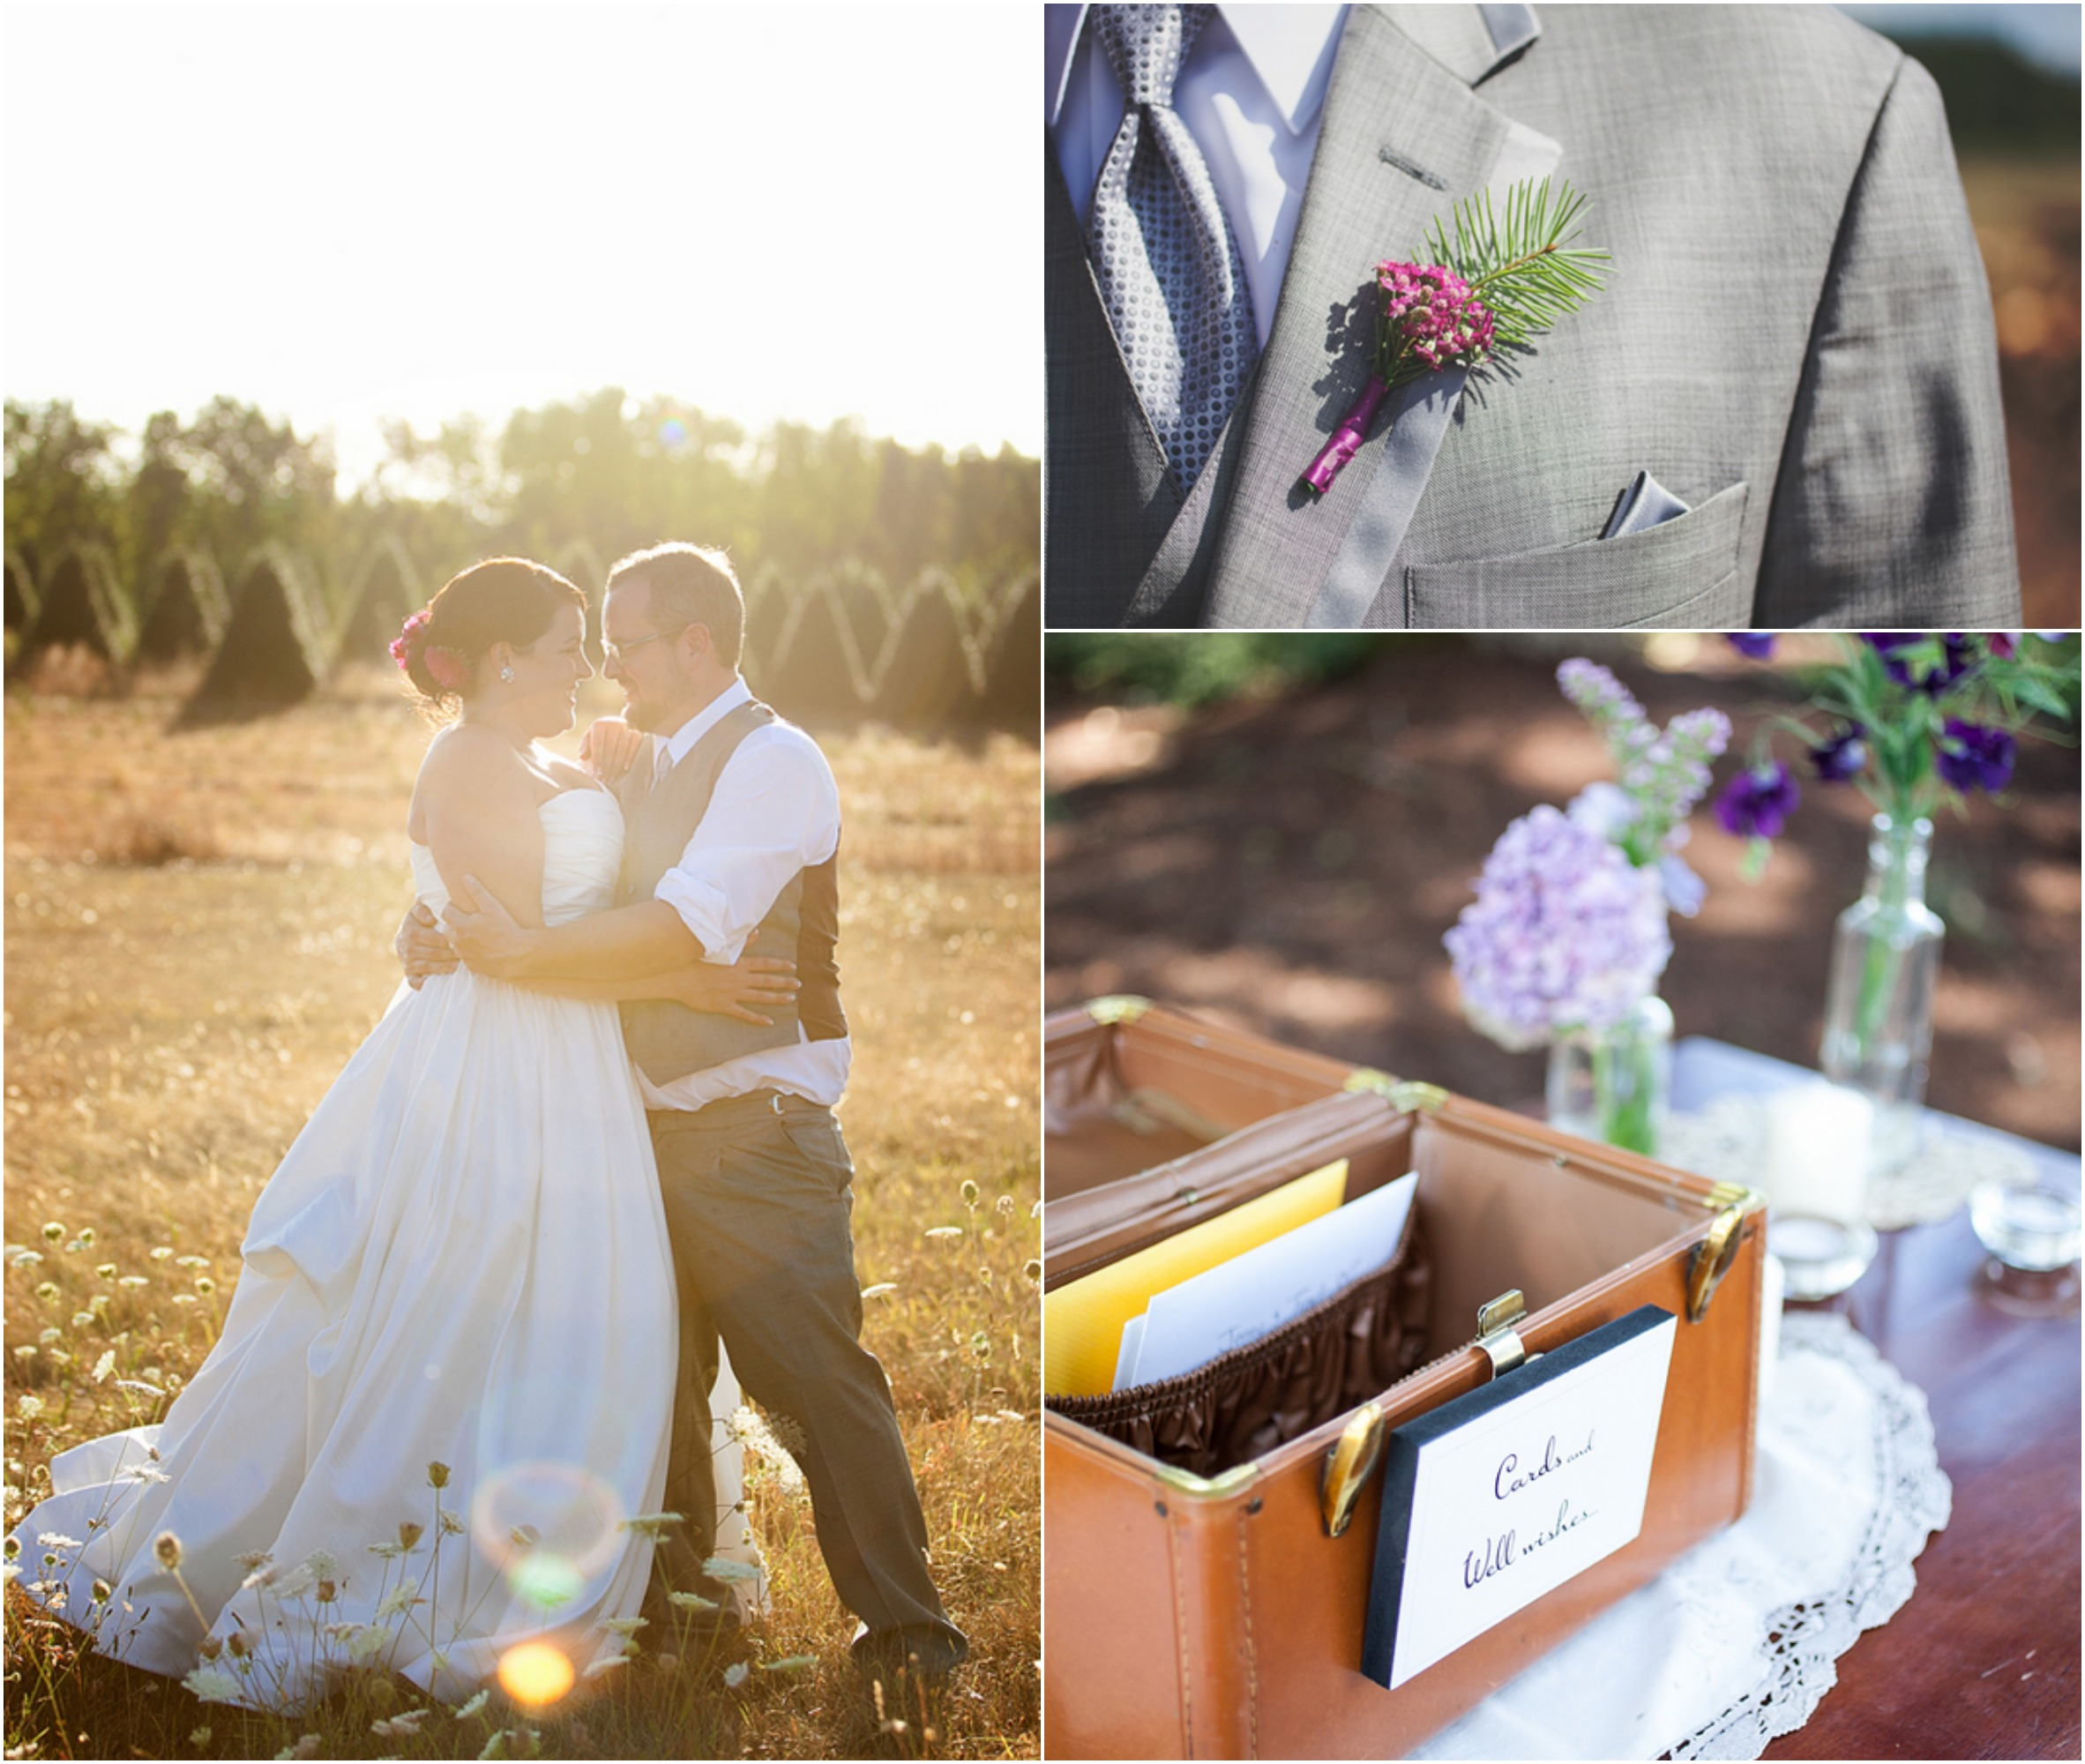 Outdoor Wedding Spots Near Me: Outdoor Country Rustic Wedding